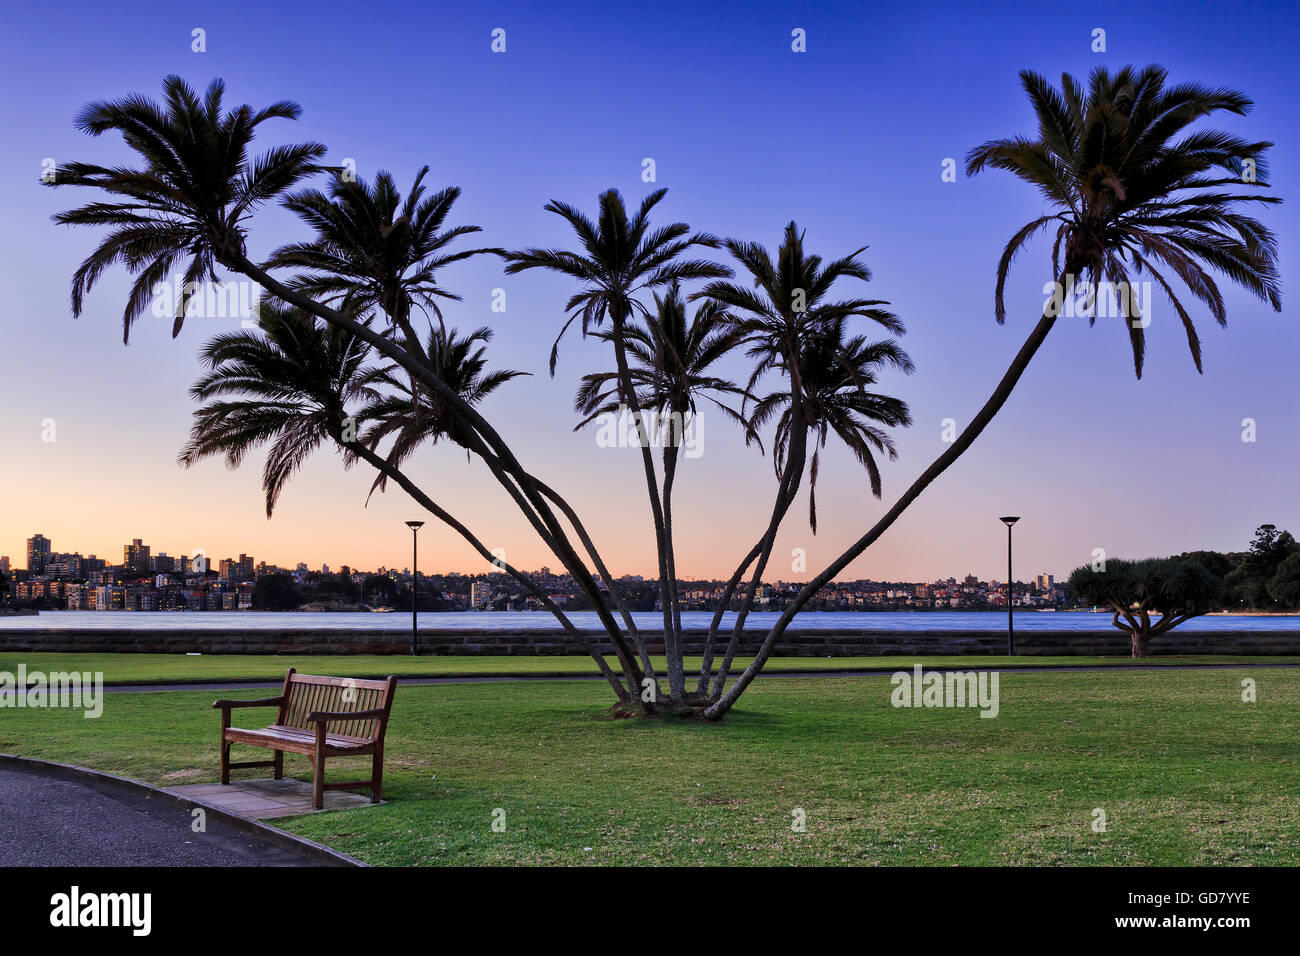 royal palm trees stock photos u0026 royal palm trees stock images alamy